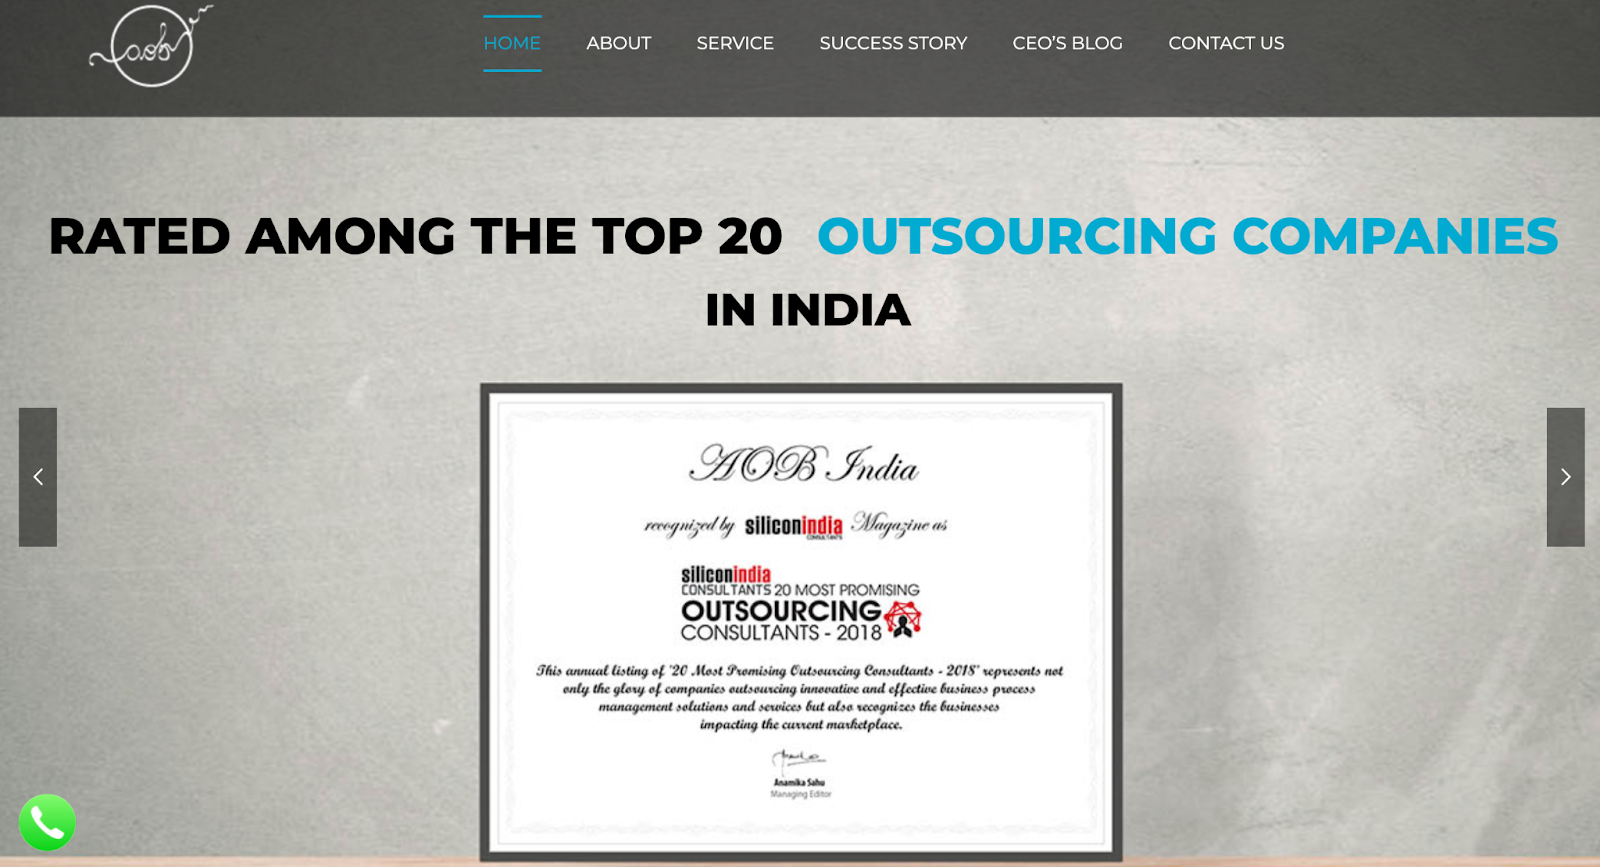 AOB India website – sales outsourcing company in India